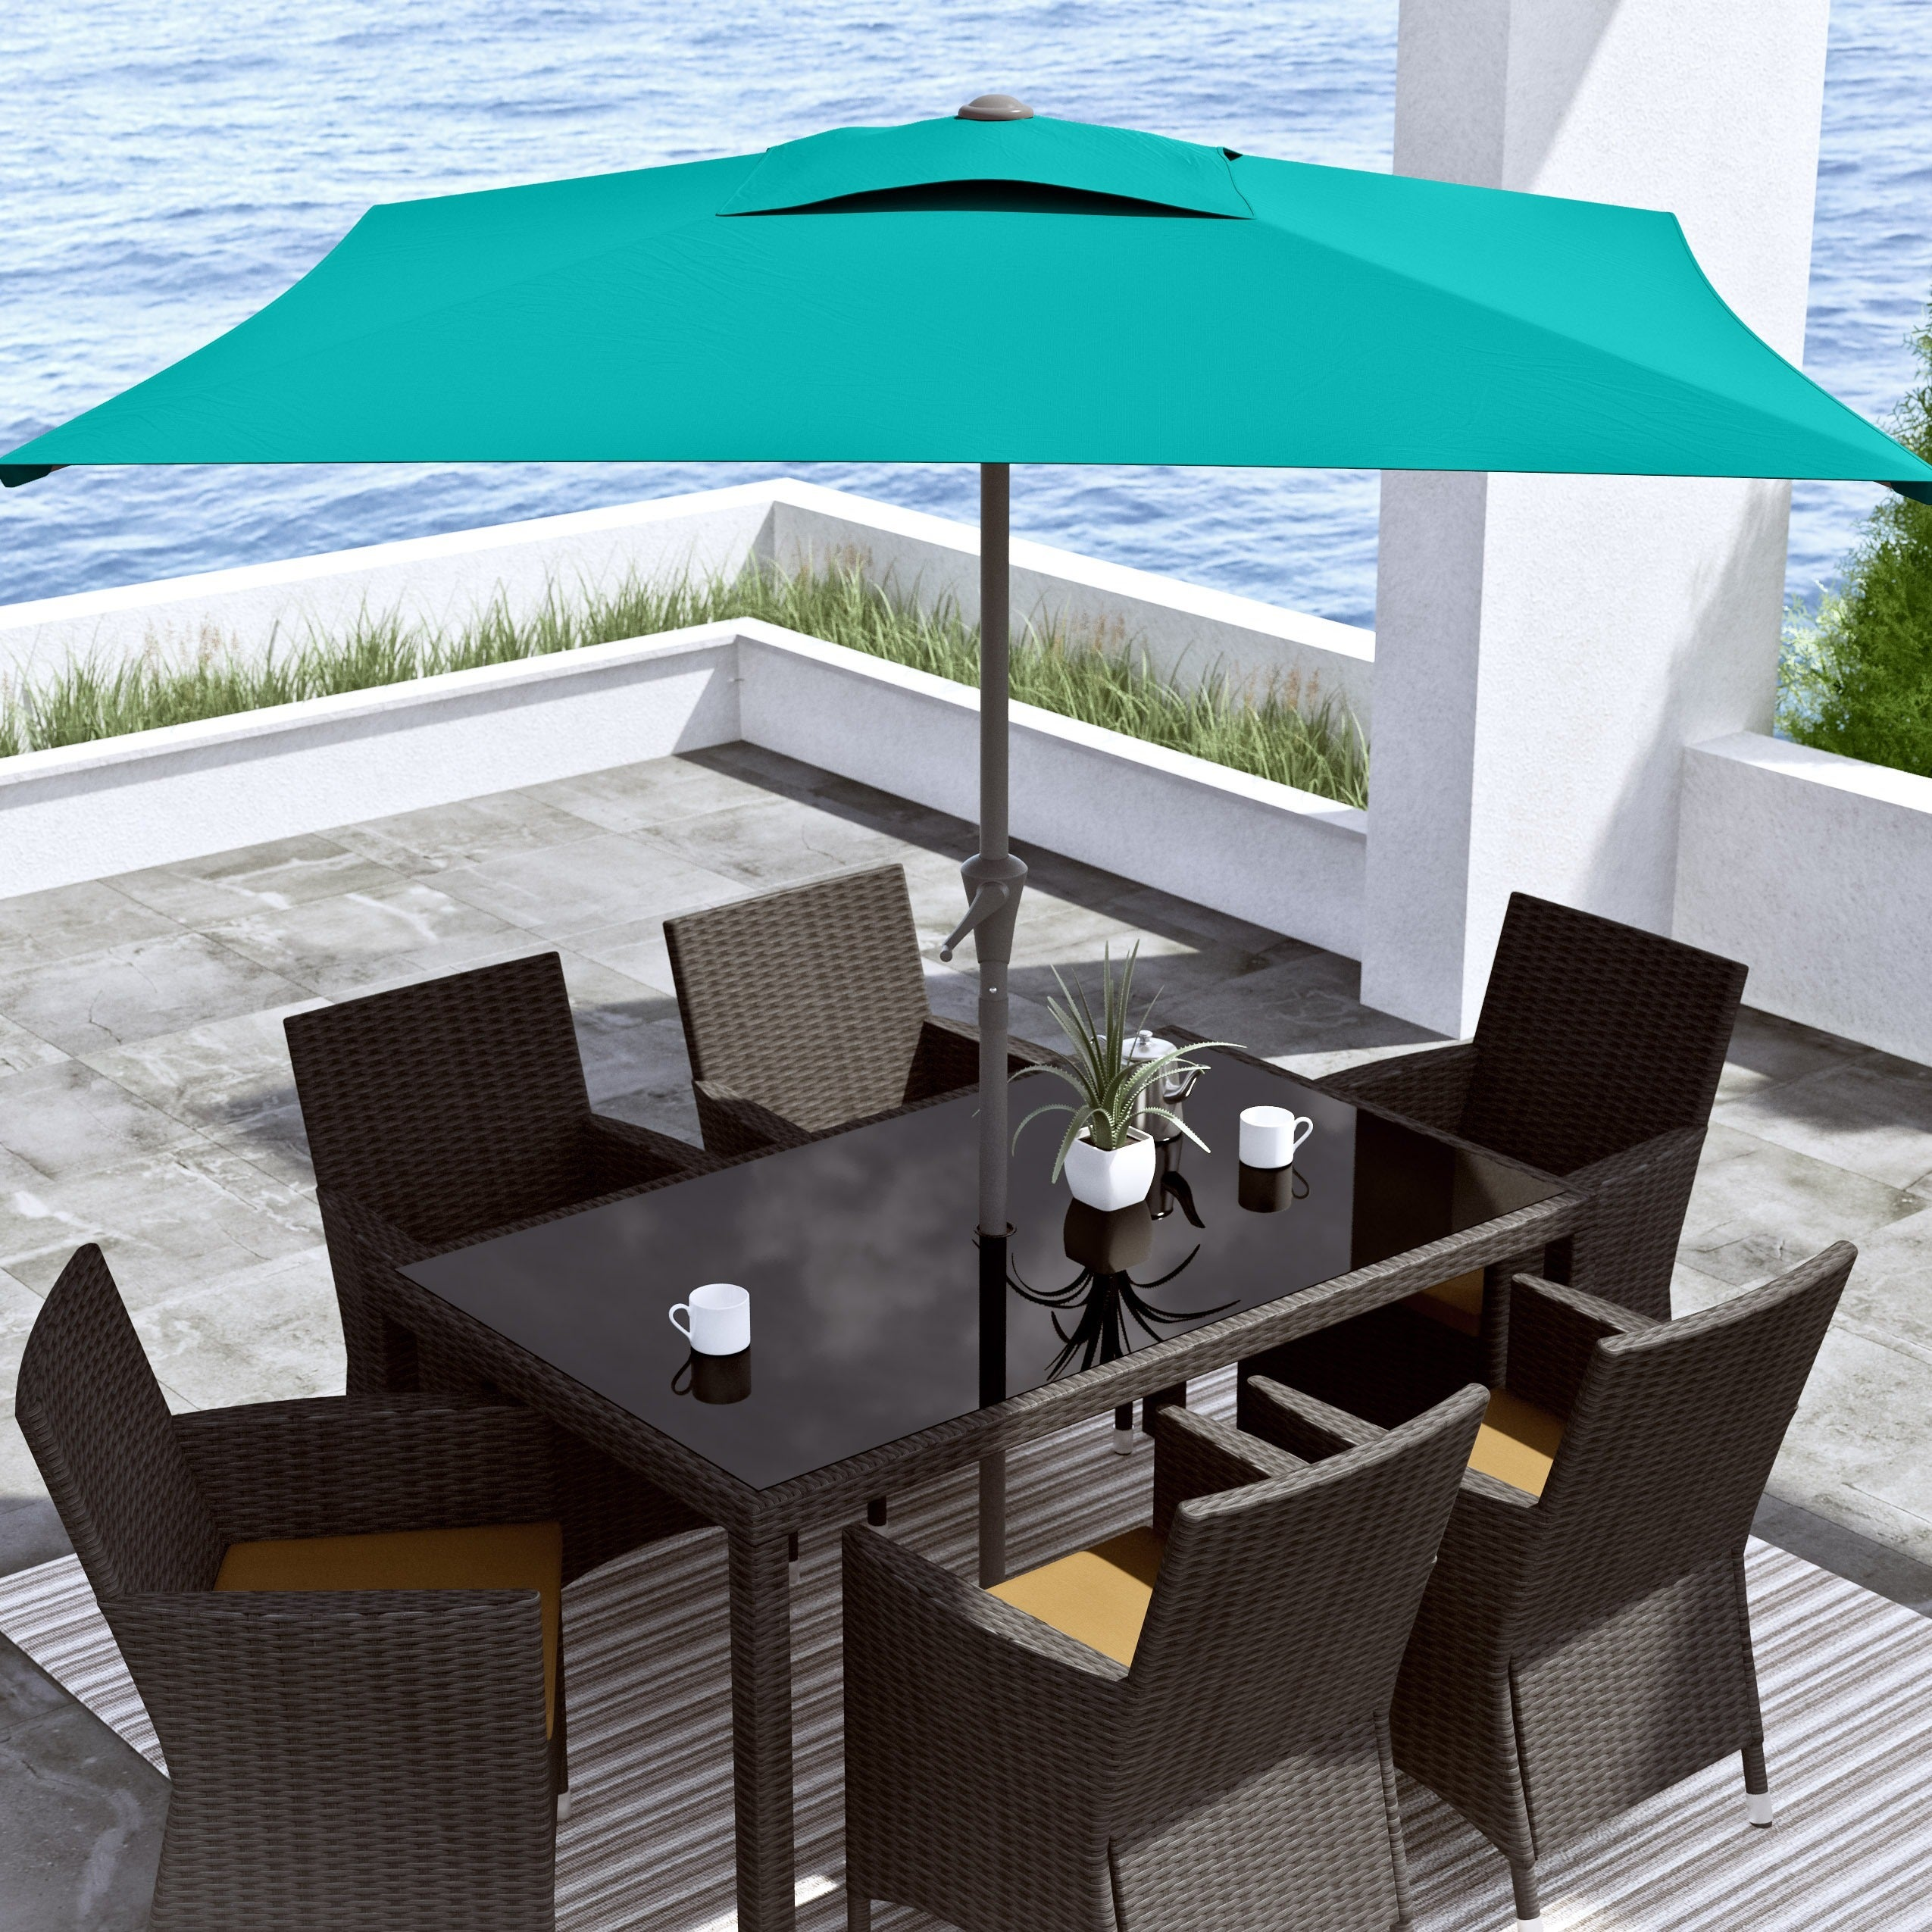 Corliving Square Patio Umbrella Free Shipping Today 10014632